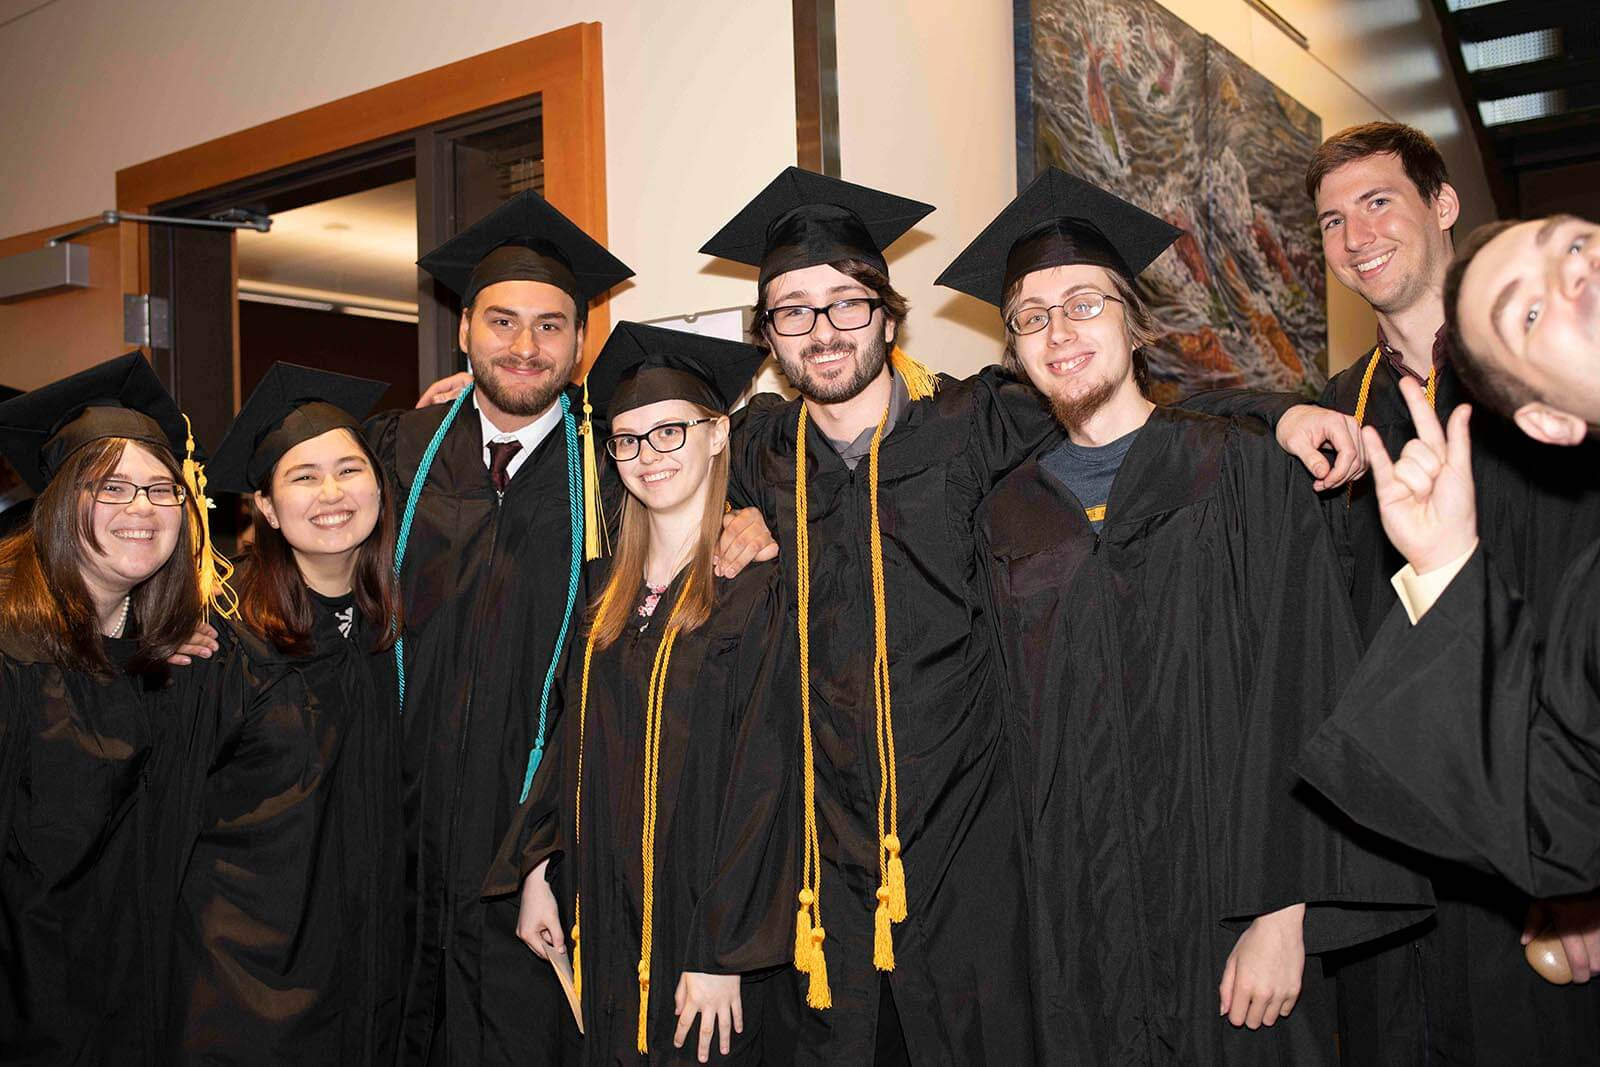 A group of graduating students in robes and mortarboards pose for a photo in a convention center hallway.